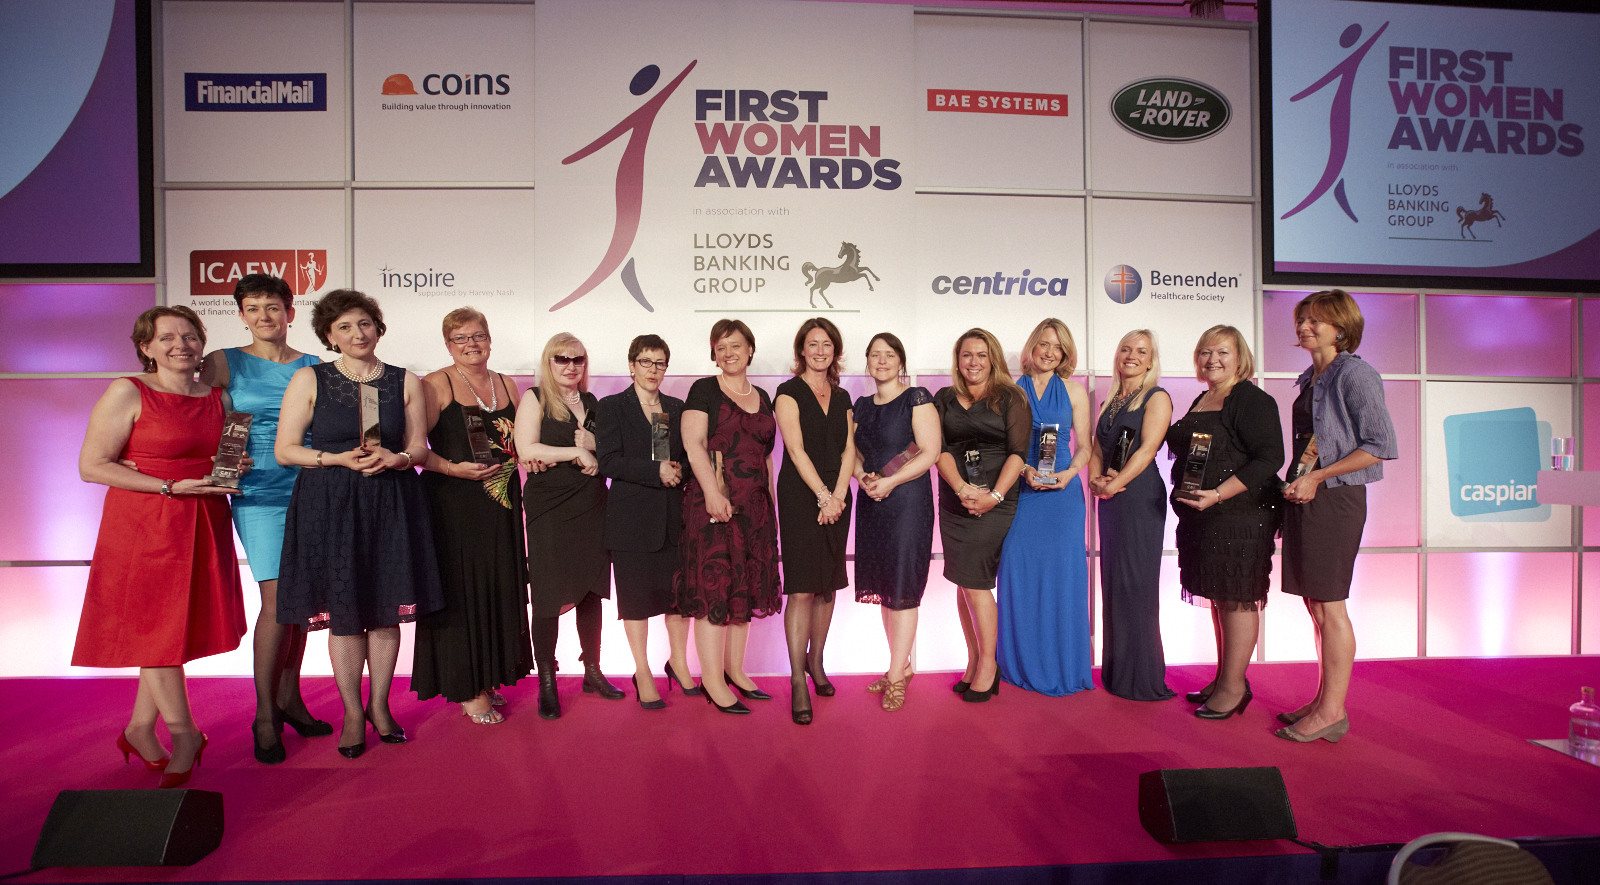 First Women Awards 2012: Winners announced